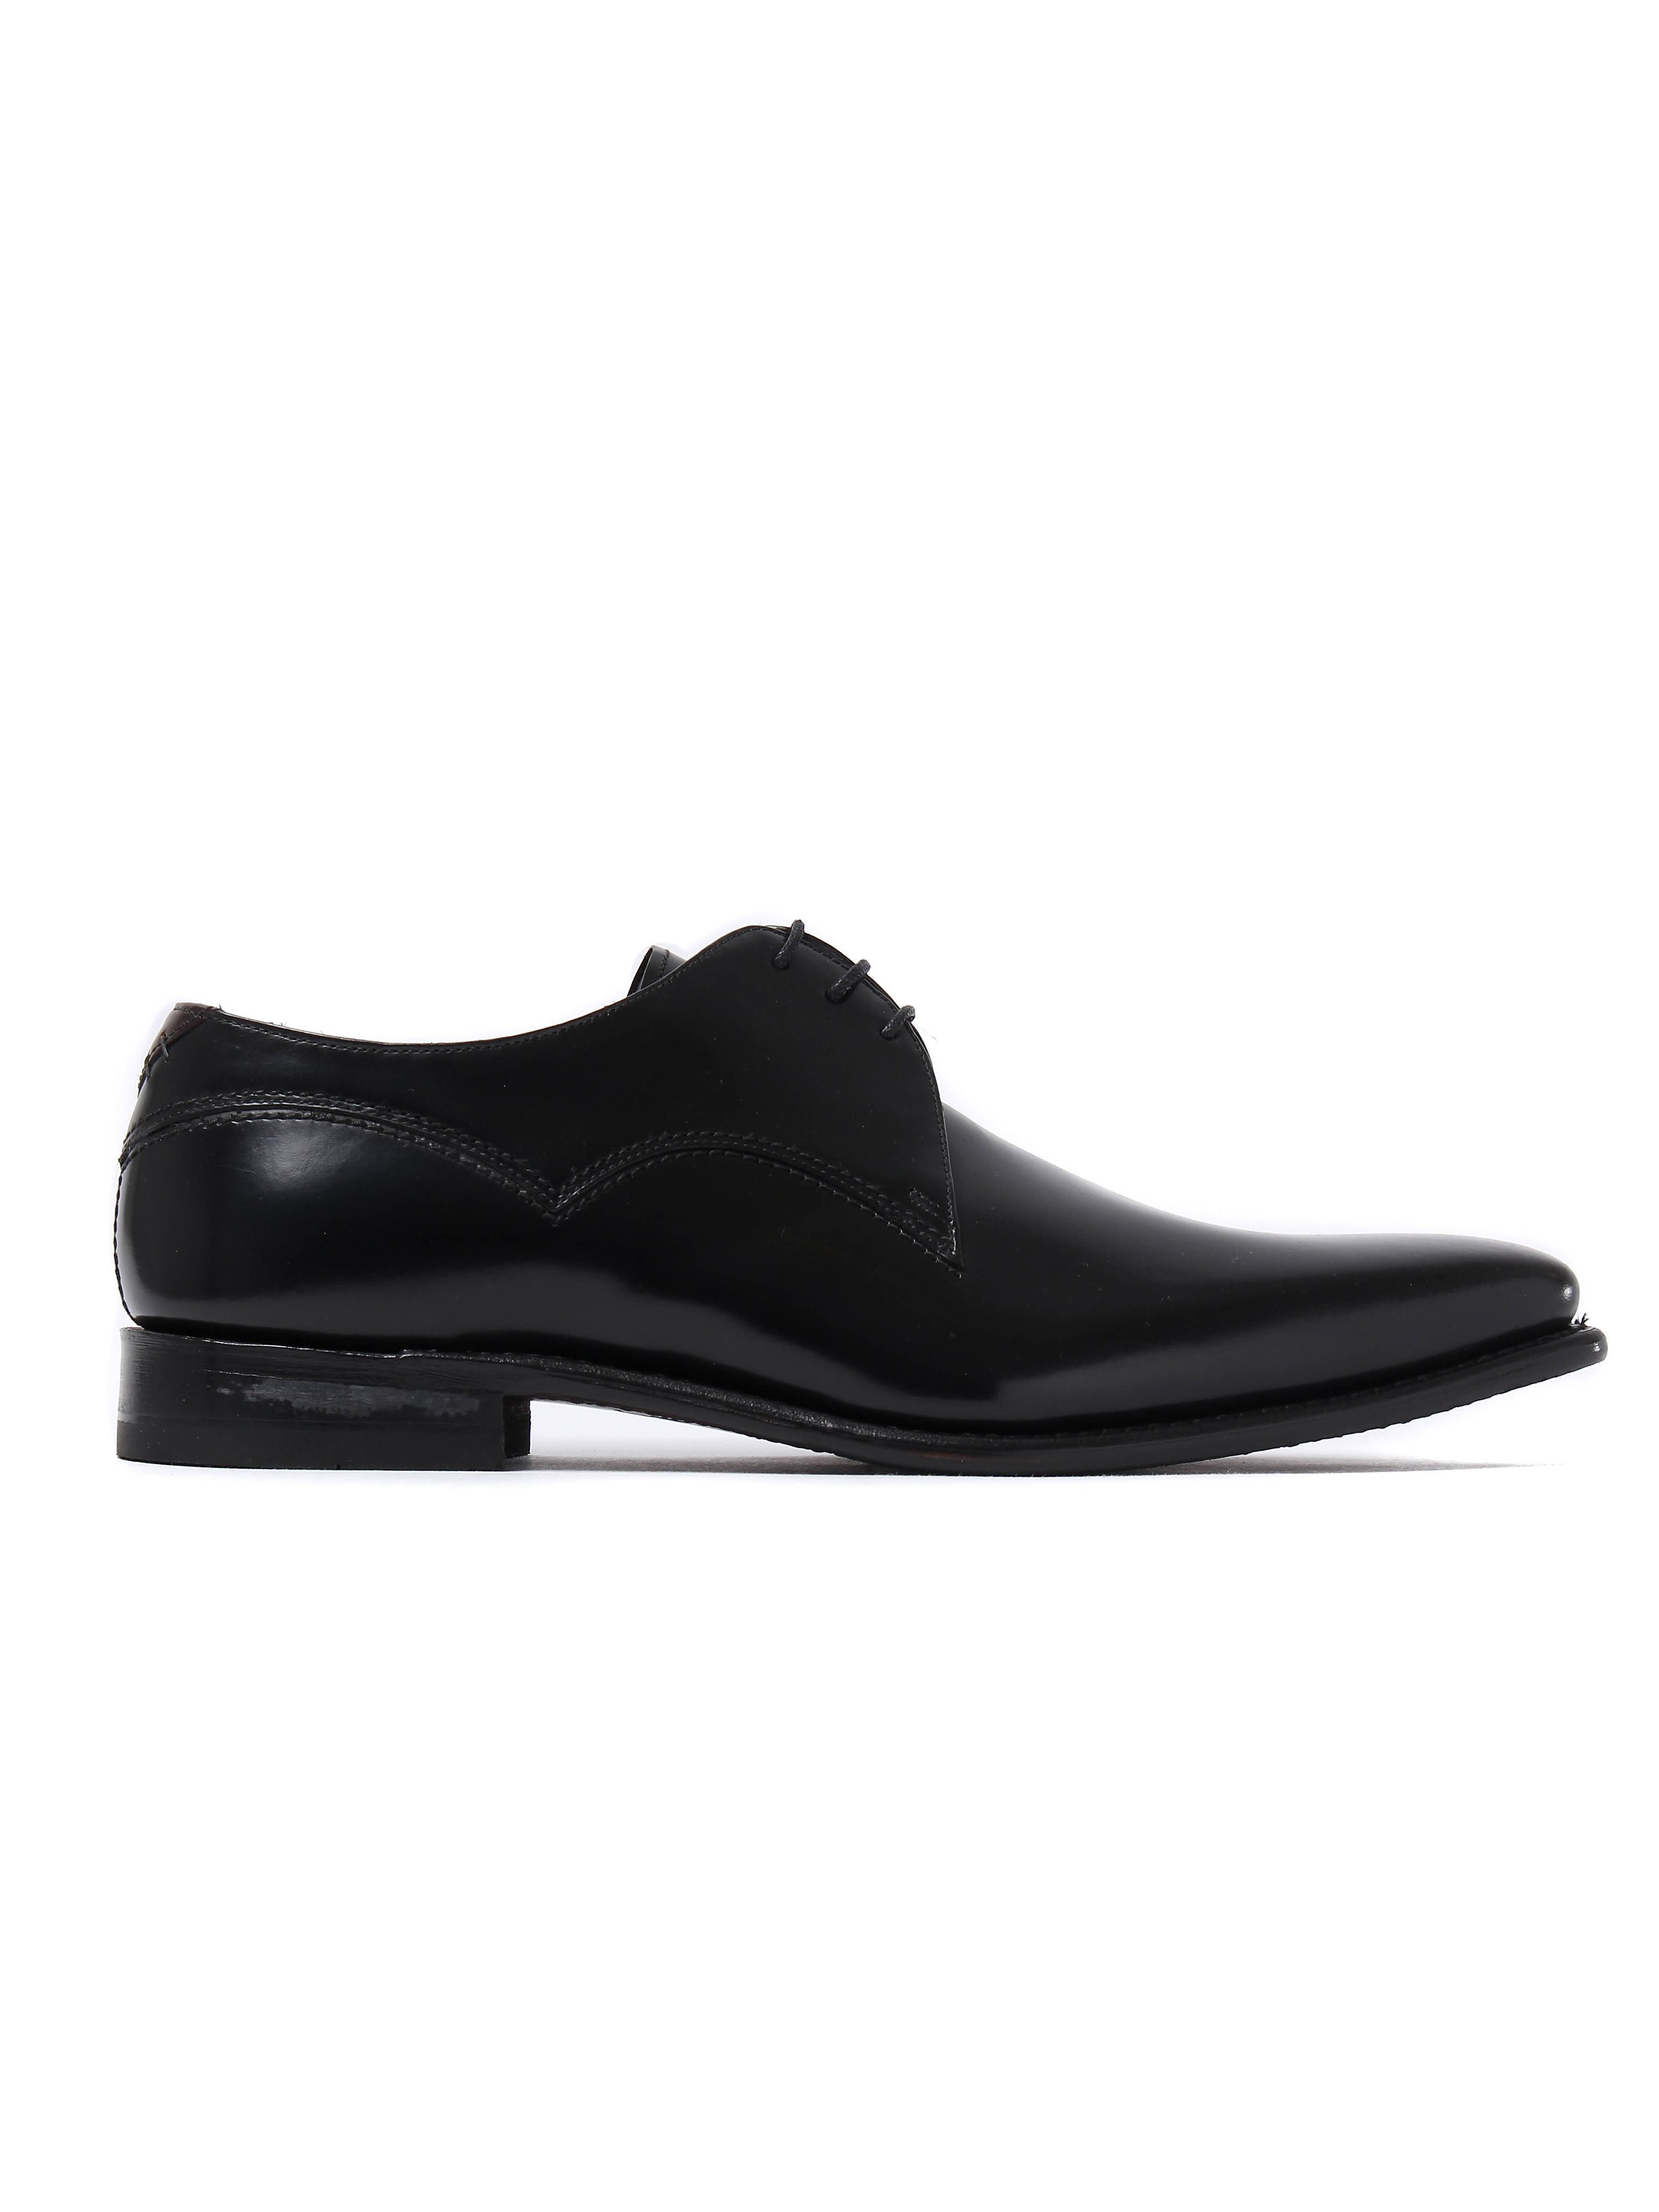 Barker Men's Connelly Patent Leather Derby Shoes - Black